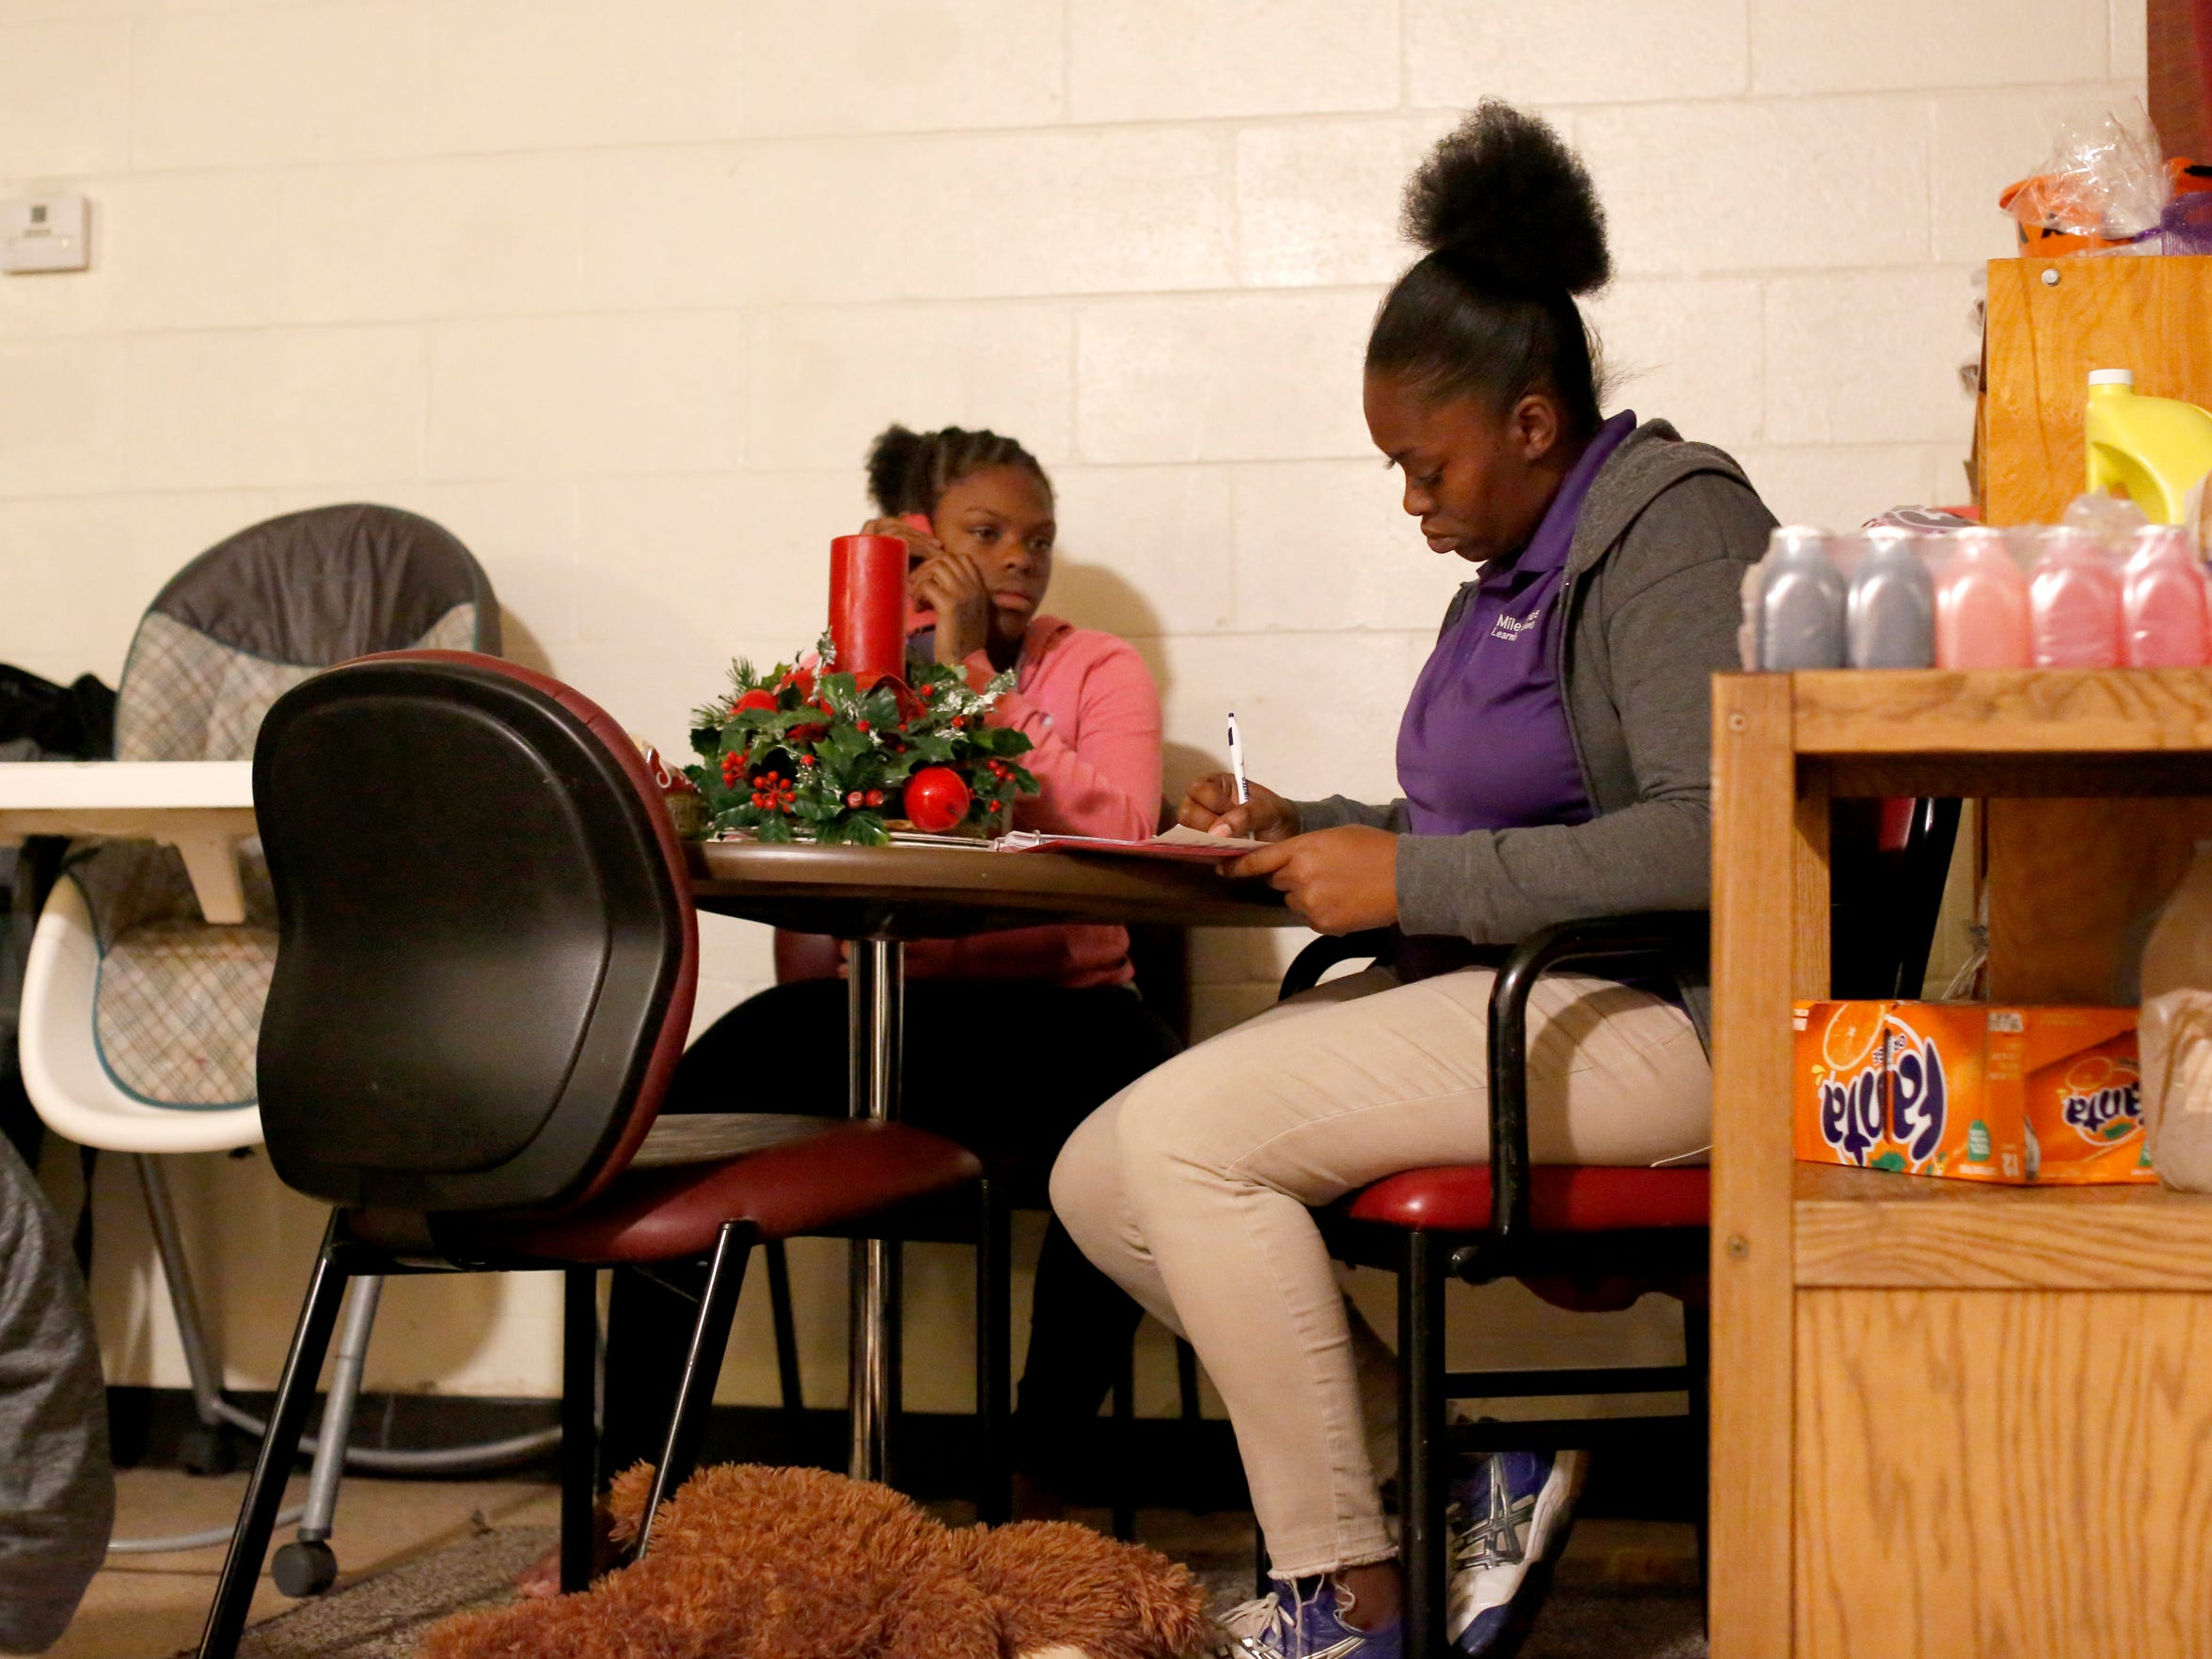 Porsche Robinson (right) goes over school papers with her daughter Trinity, 13, in their apartment Nov 15.